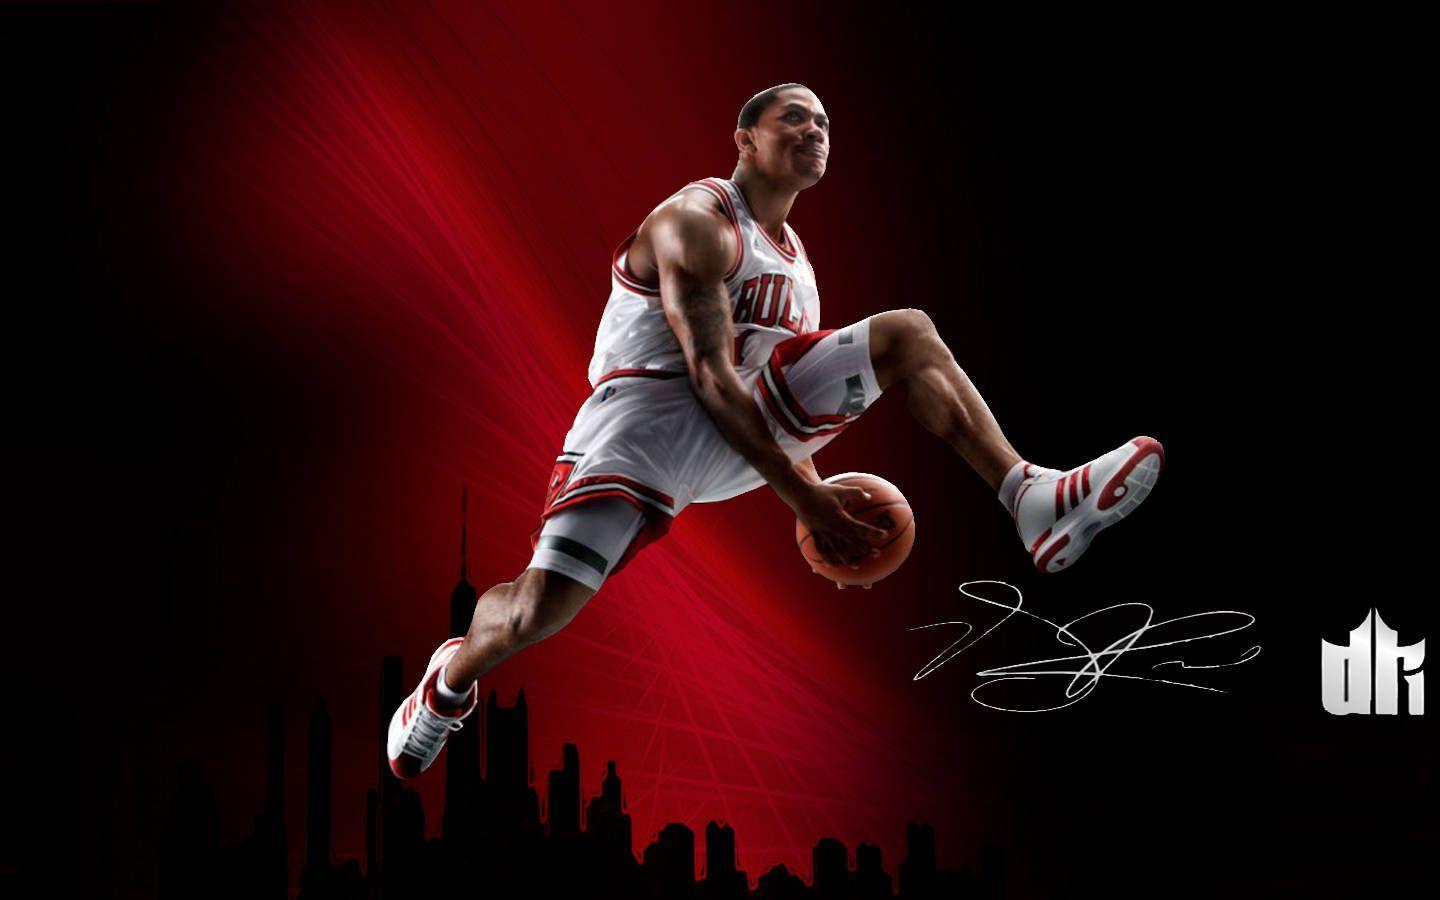 Derrick Rose Dunk Wallpapers 1440x900